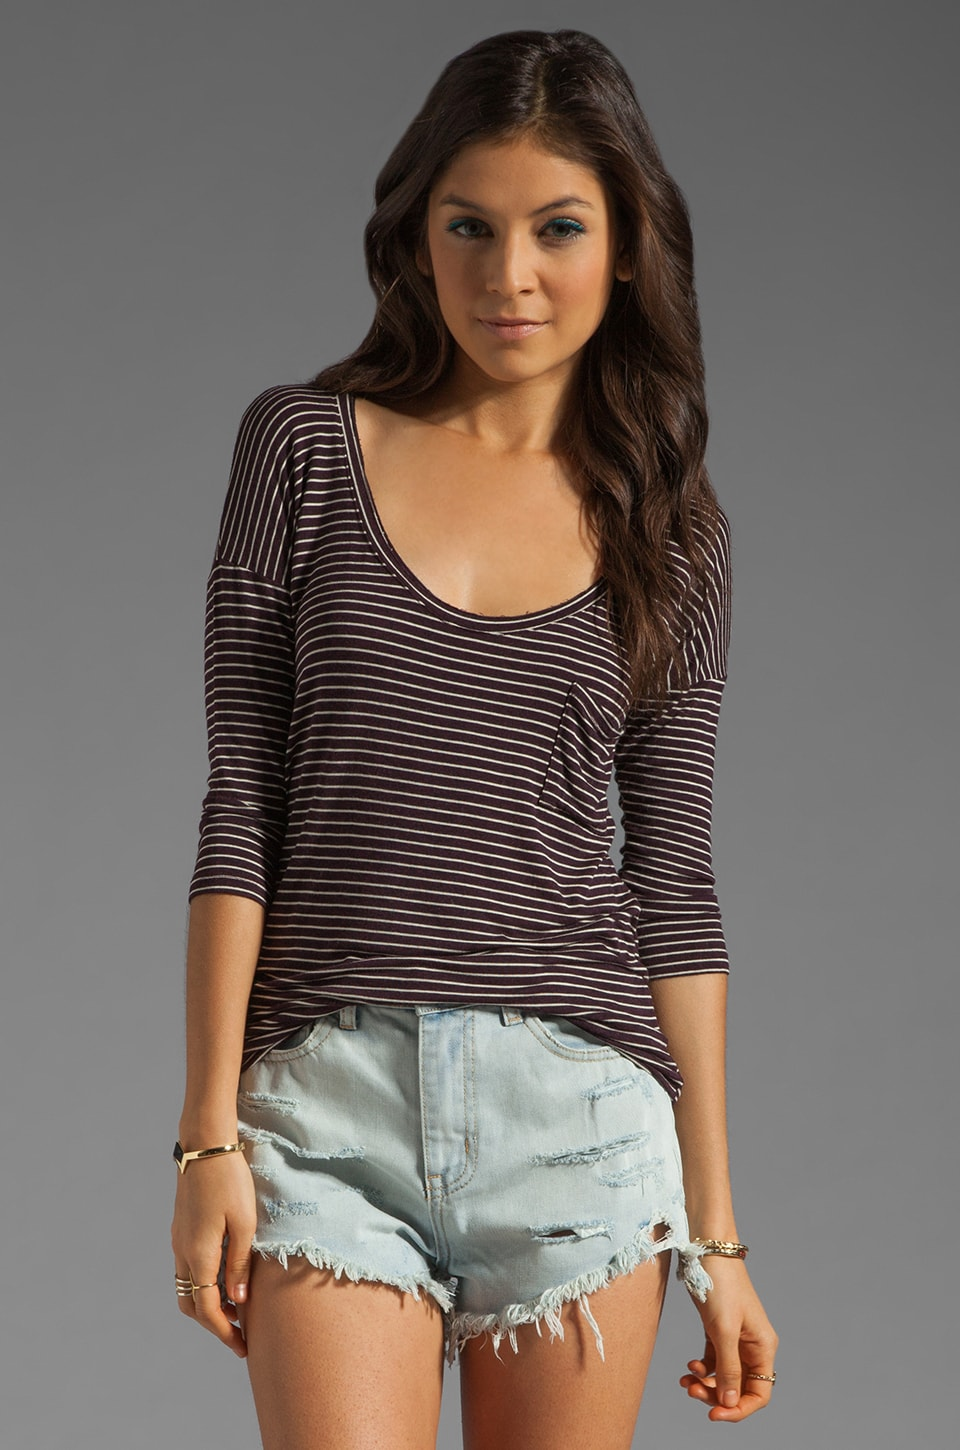 Free People Retro Stripe Tee in Eggplant